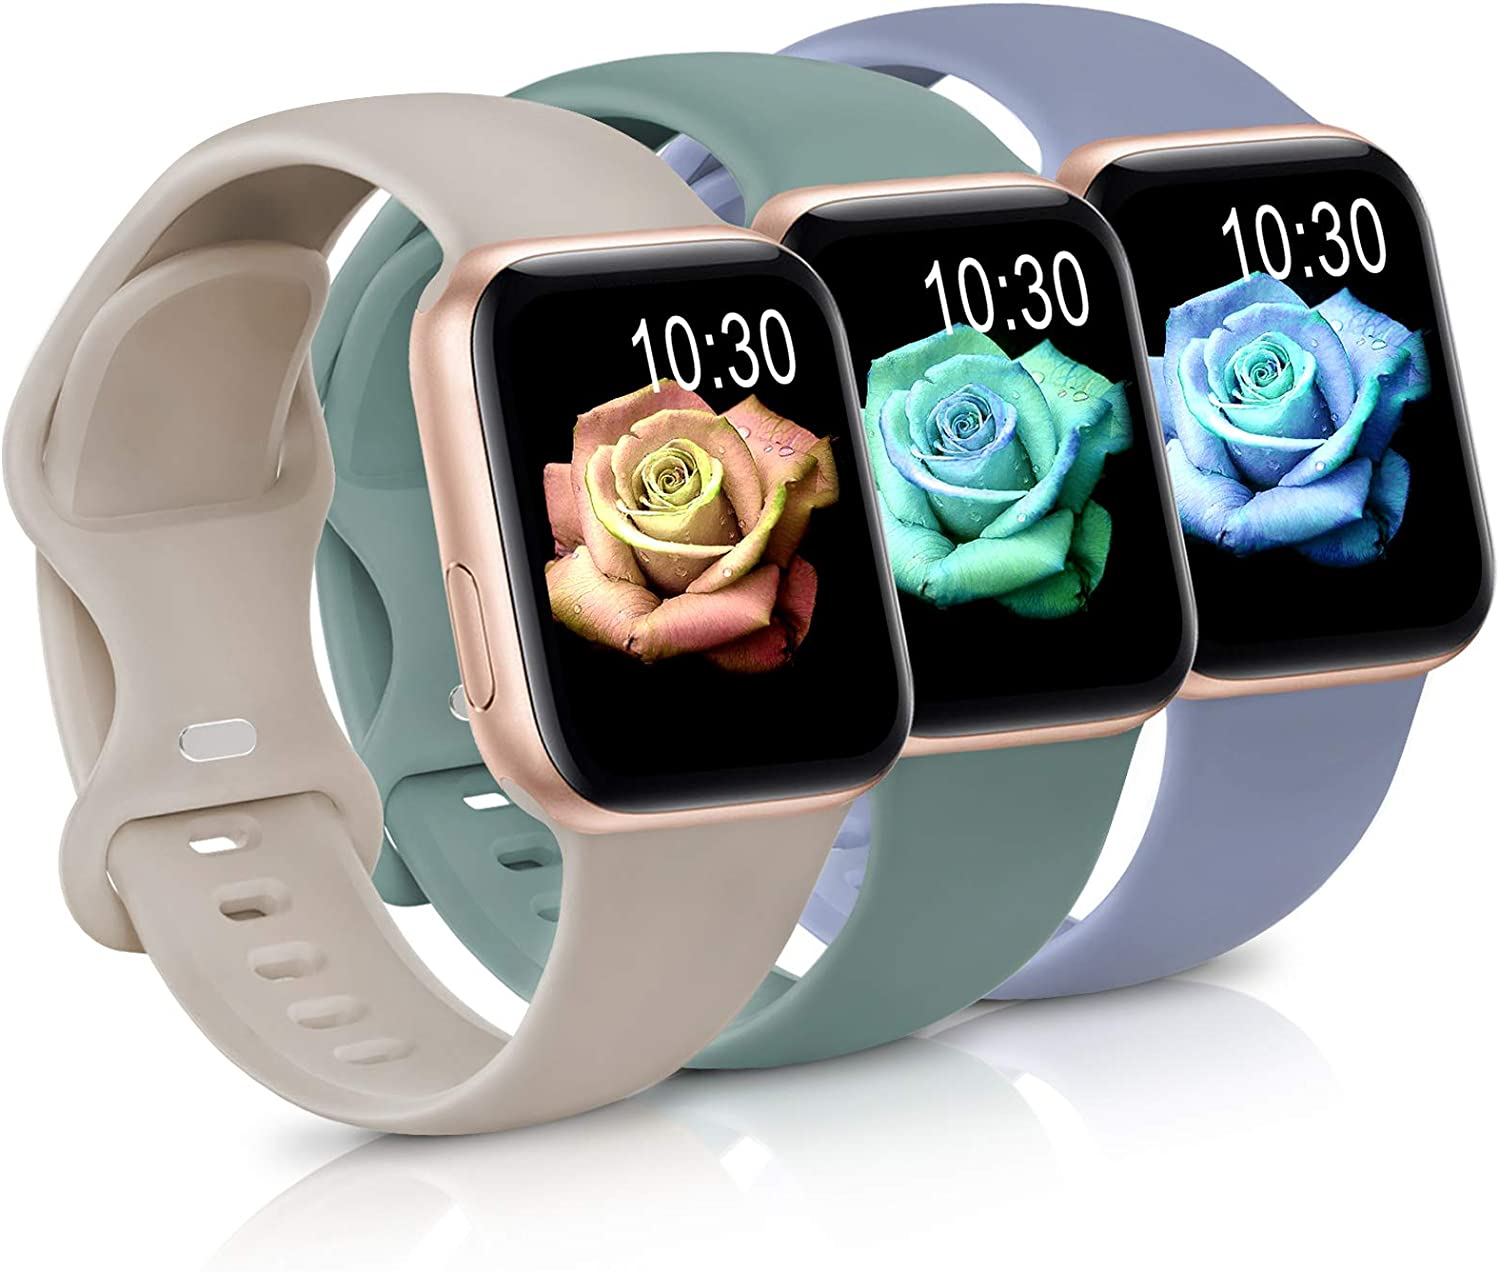 Sport Band Compatible with Apple Watch iWatch Bands 42mm 44mm,Soft Silicone Strap Wristbands for Apple Watch Series 3 6 5 4 2 1 SE Women Men Pack 3,Cool Gray/Cactus/Stone,42/44mm,S/M